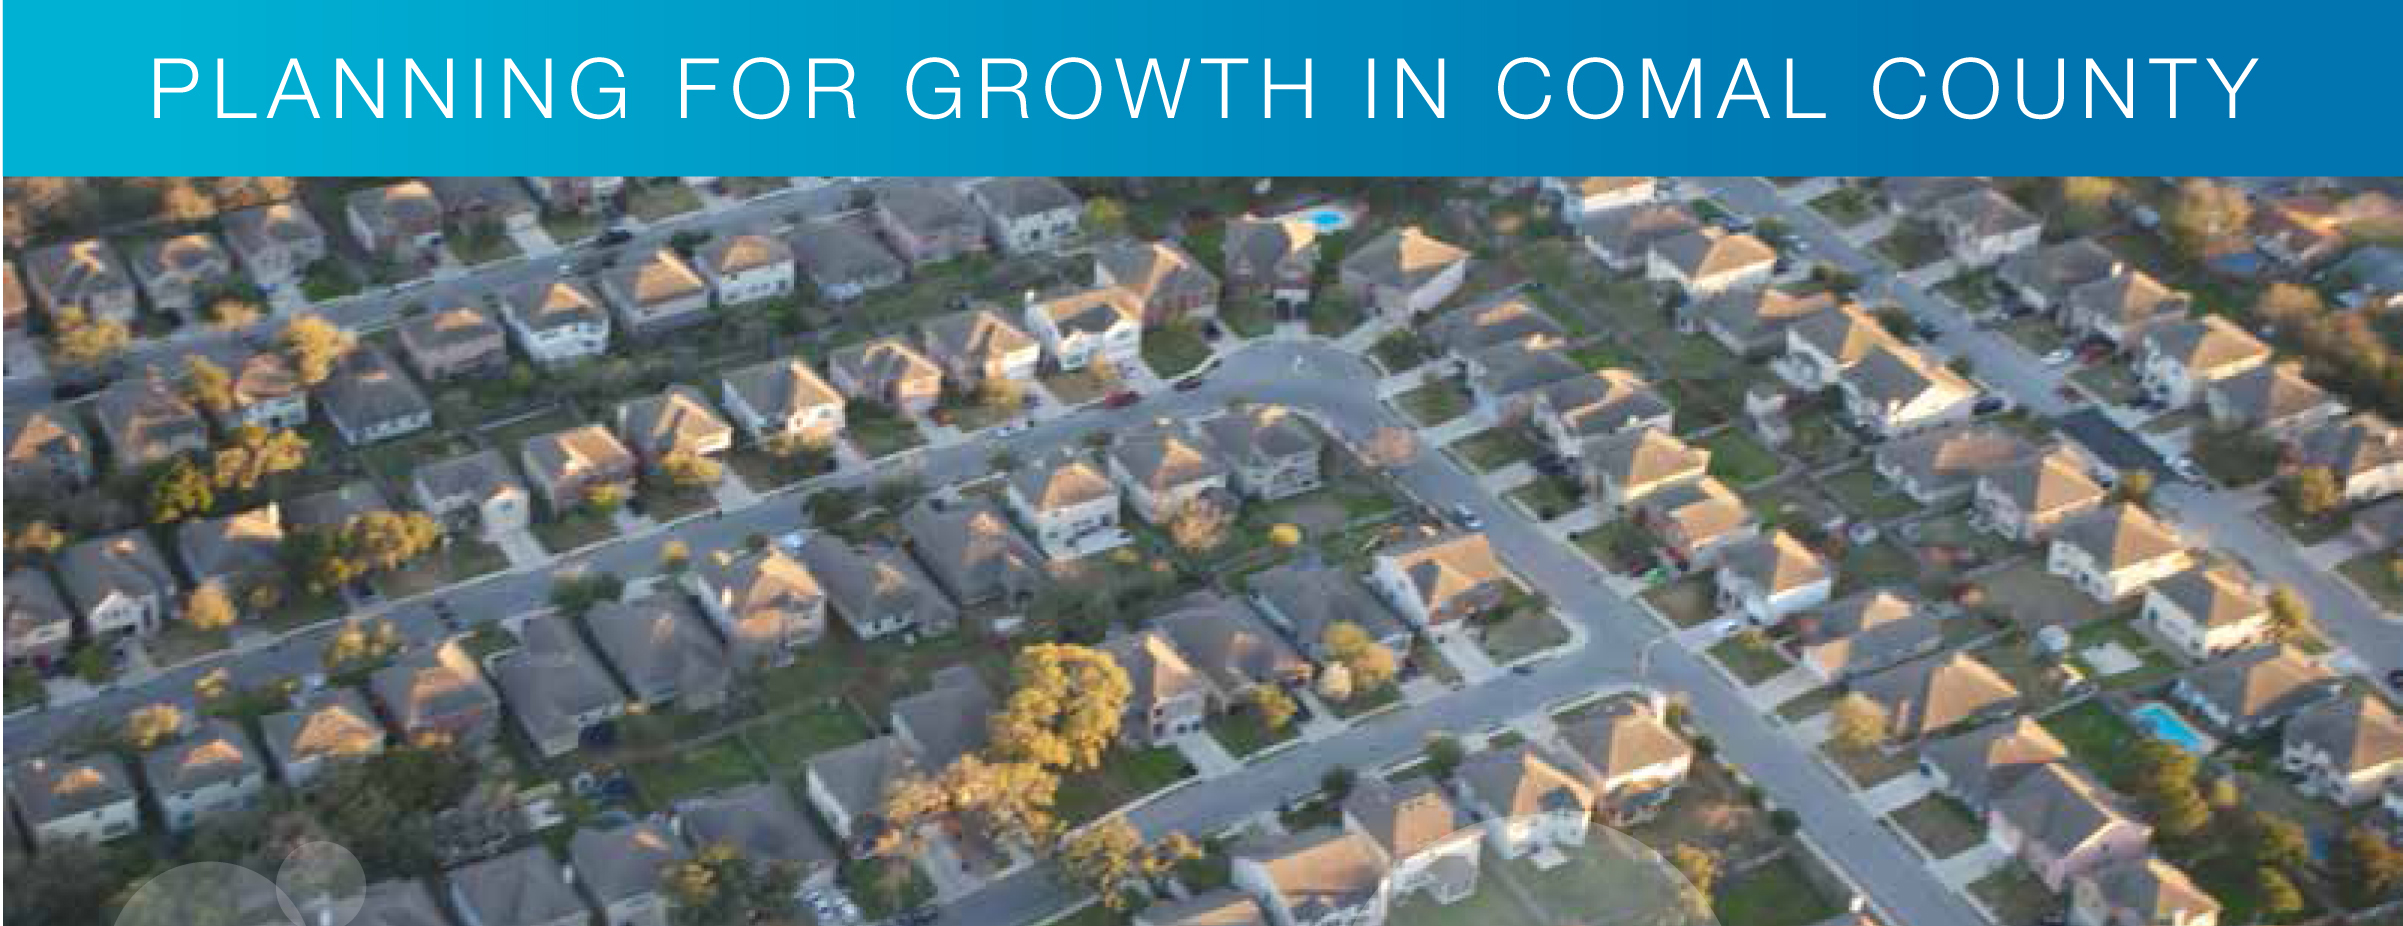 """Conference presentations from """"Planning for Growth in Comal County"""""""